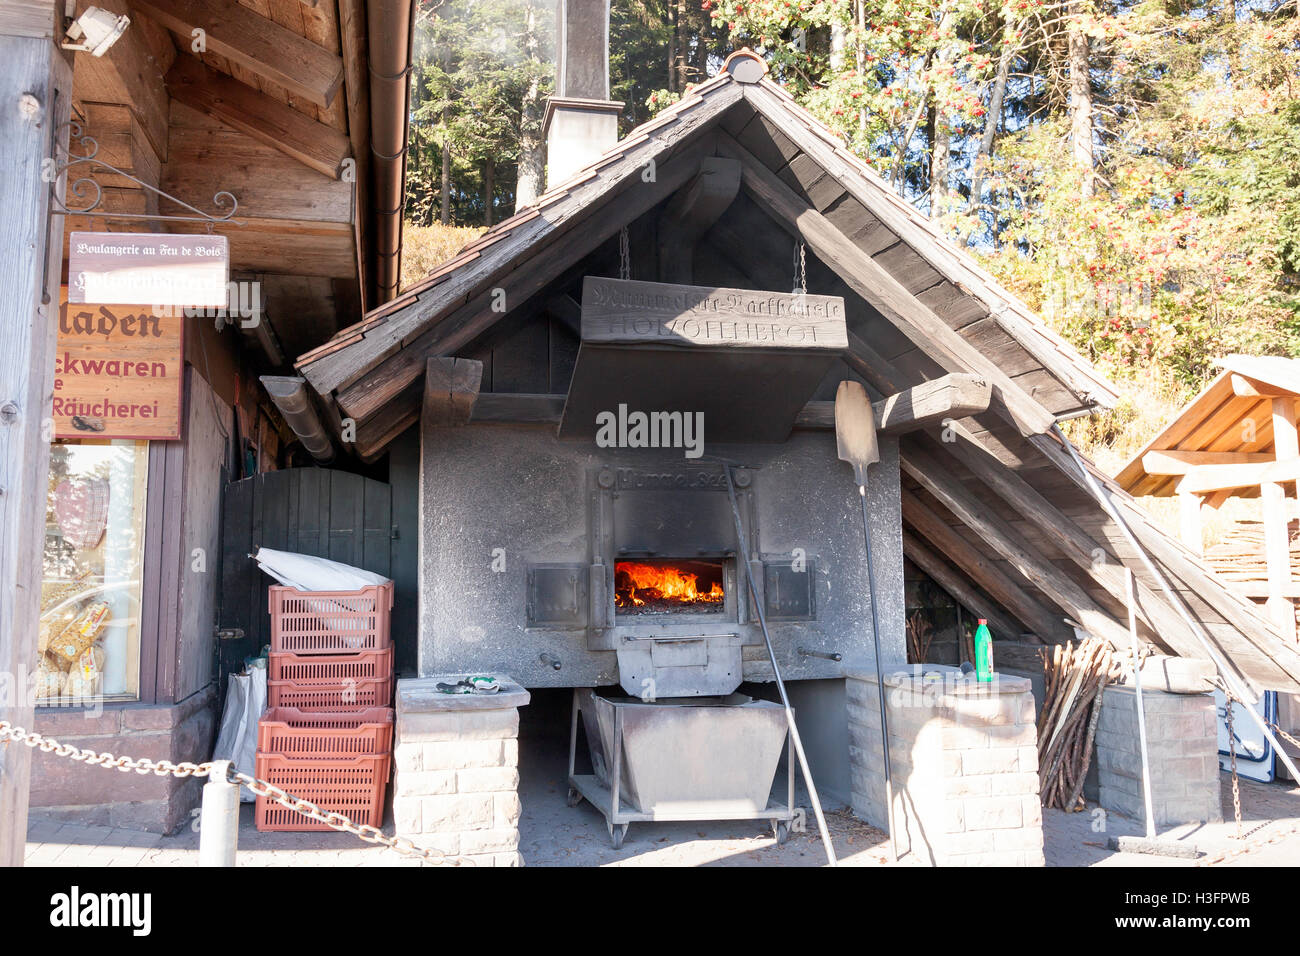 Wood burning Brick oven at Hotel at lake Mummelsee in Southern Germany Black Forest, Baden-Wuerttemberg, Germany, - Stock Image